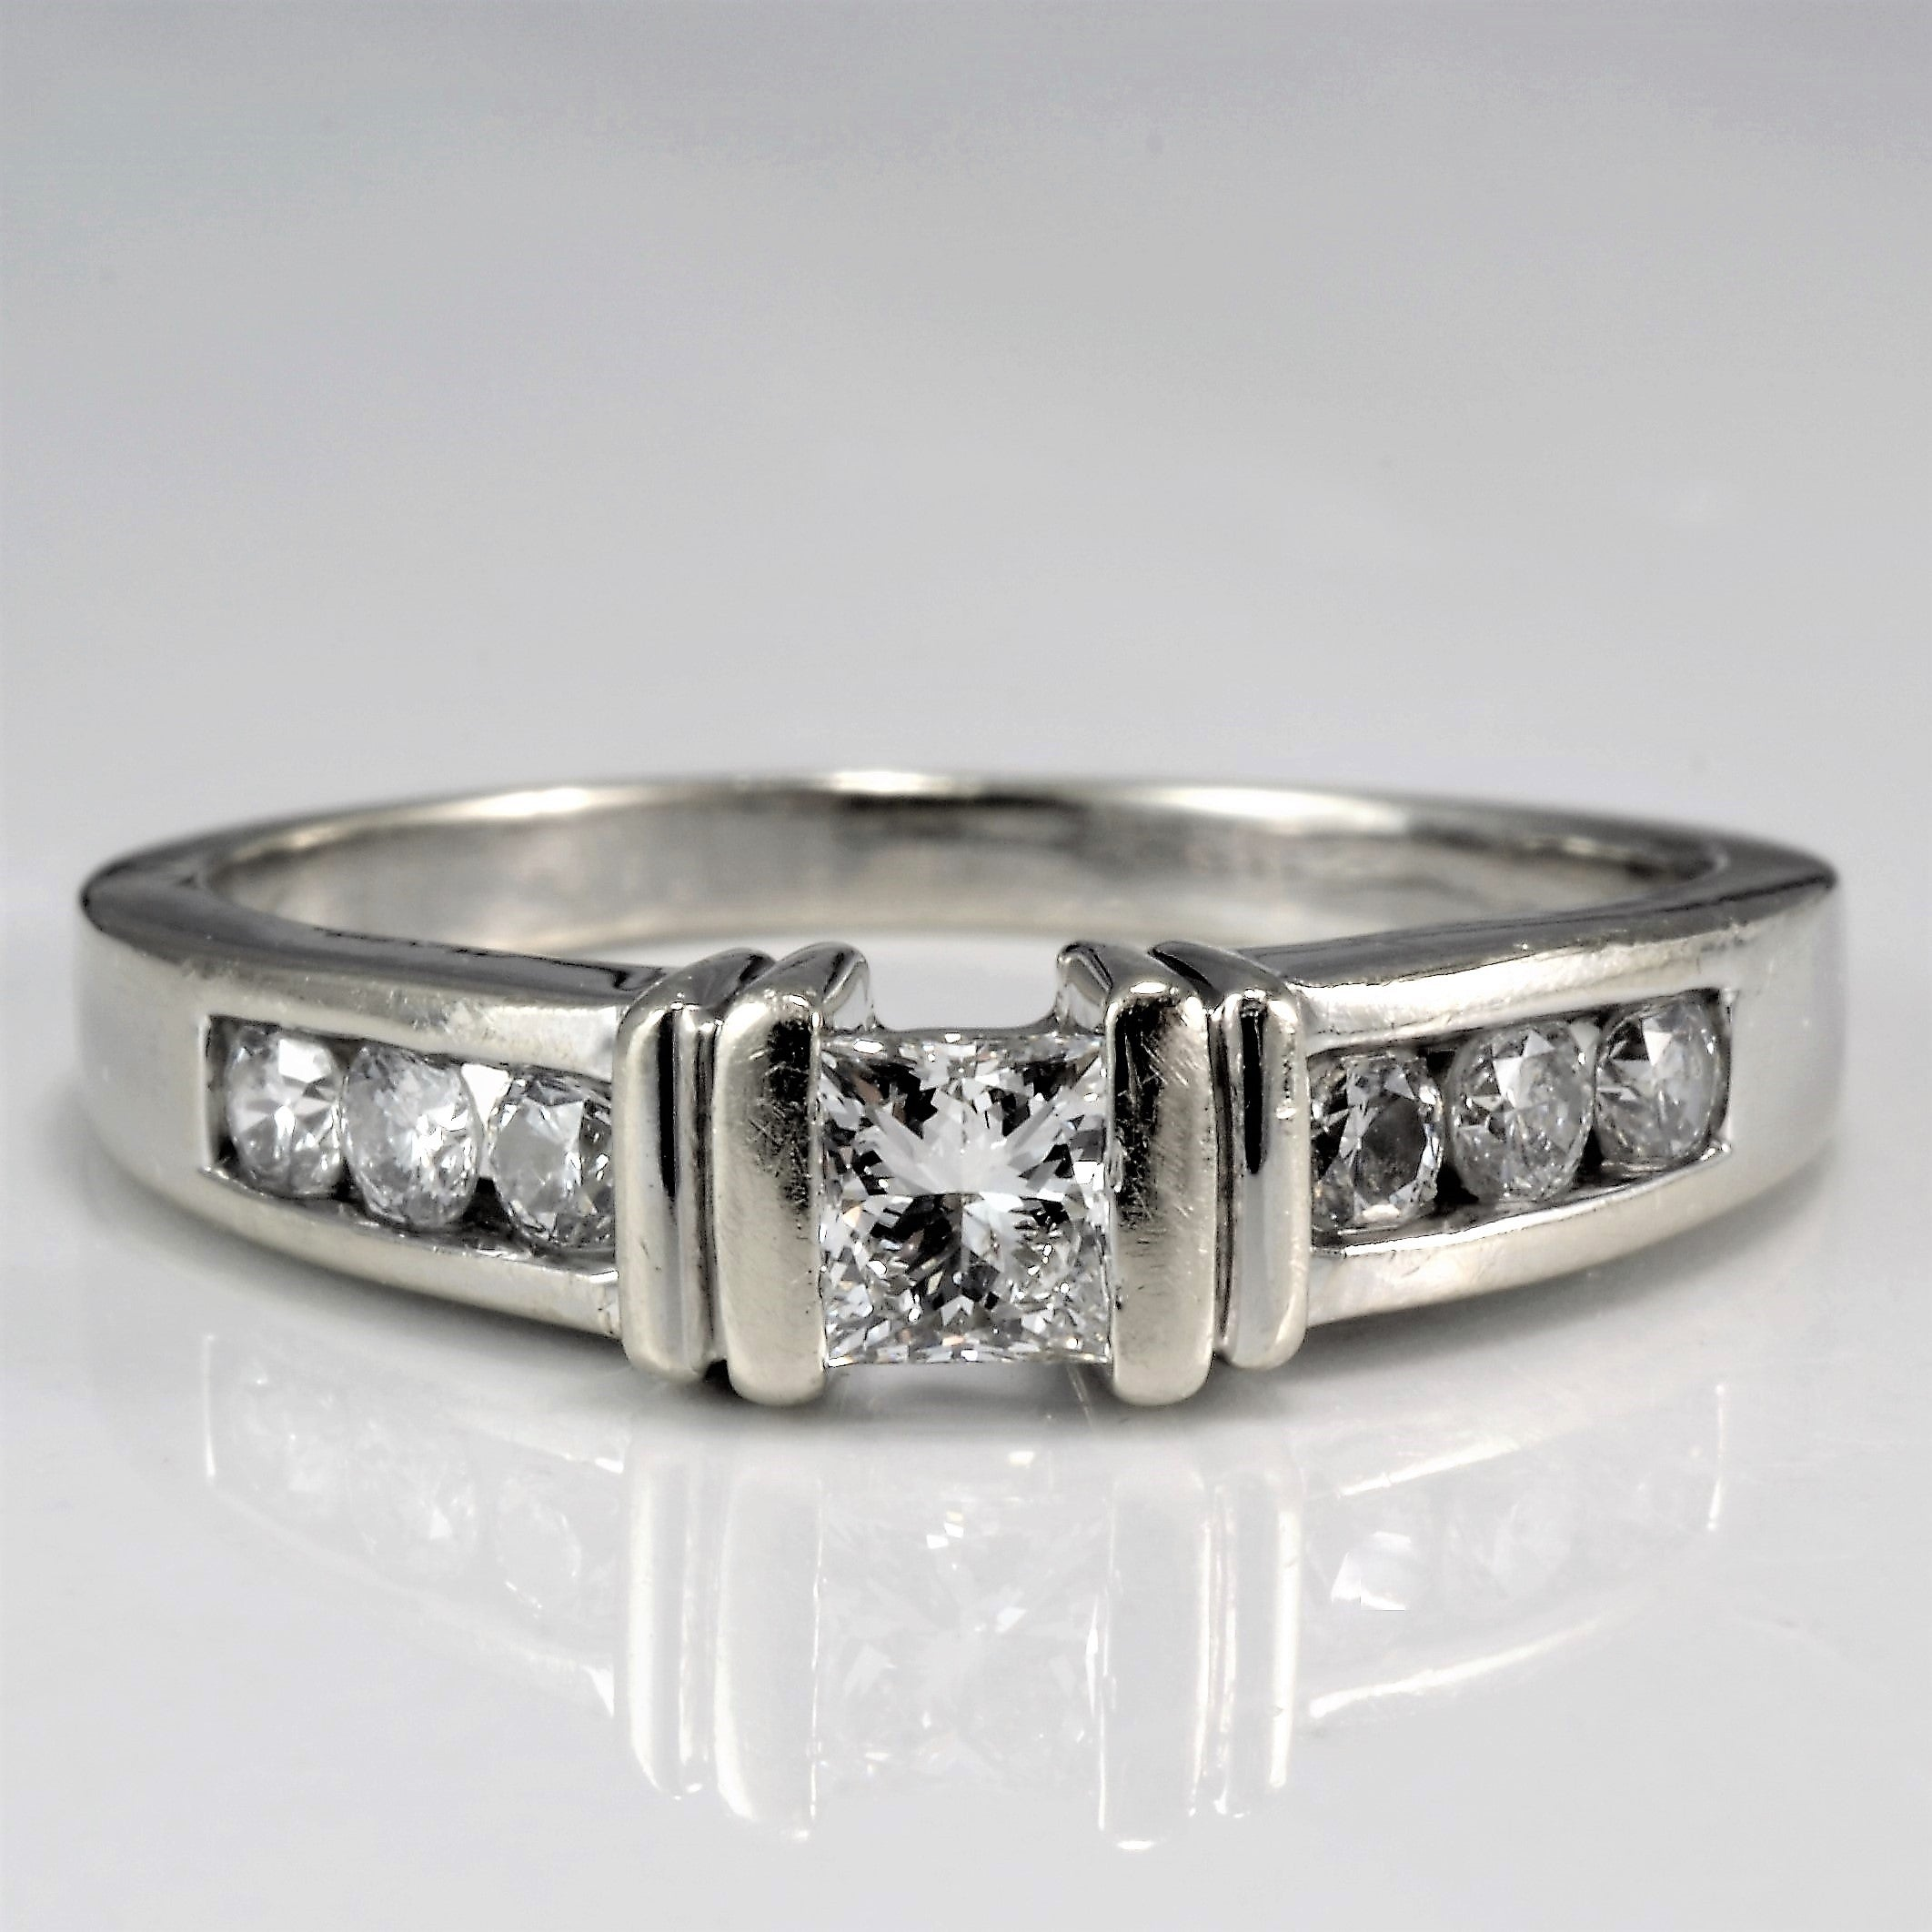 Semi Bezel Set Princess Diamond Engagement Ring | 0.41 ctw, SZ 7.25 |